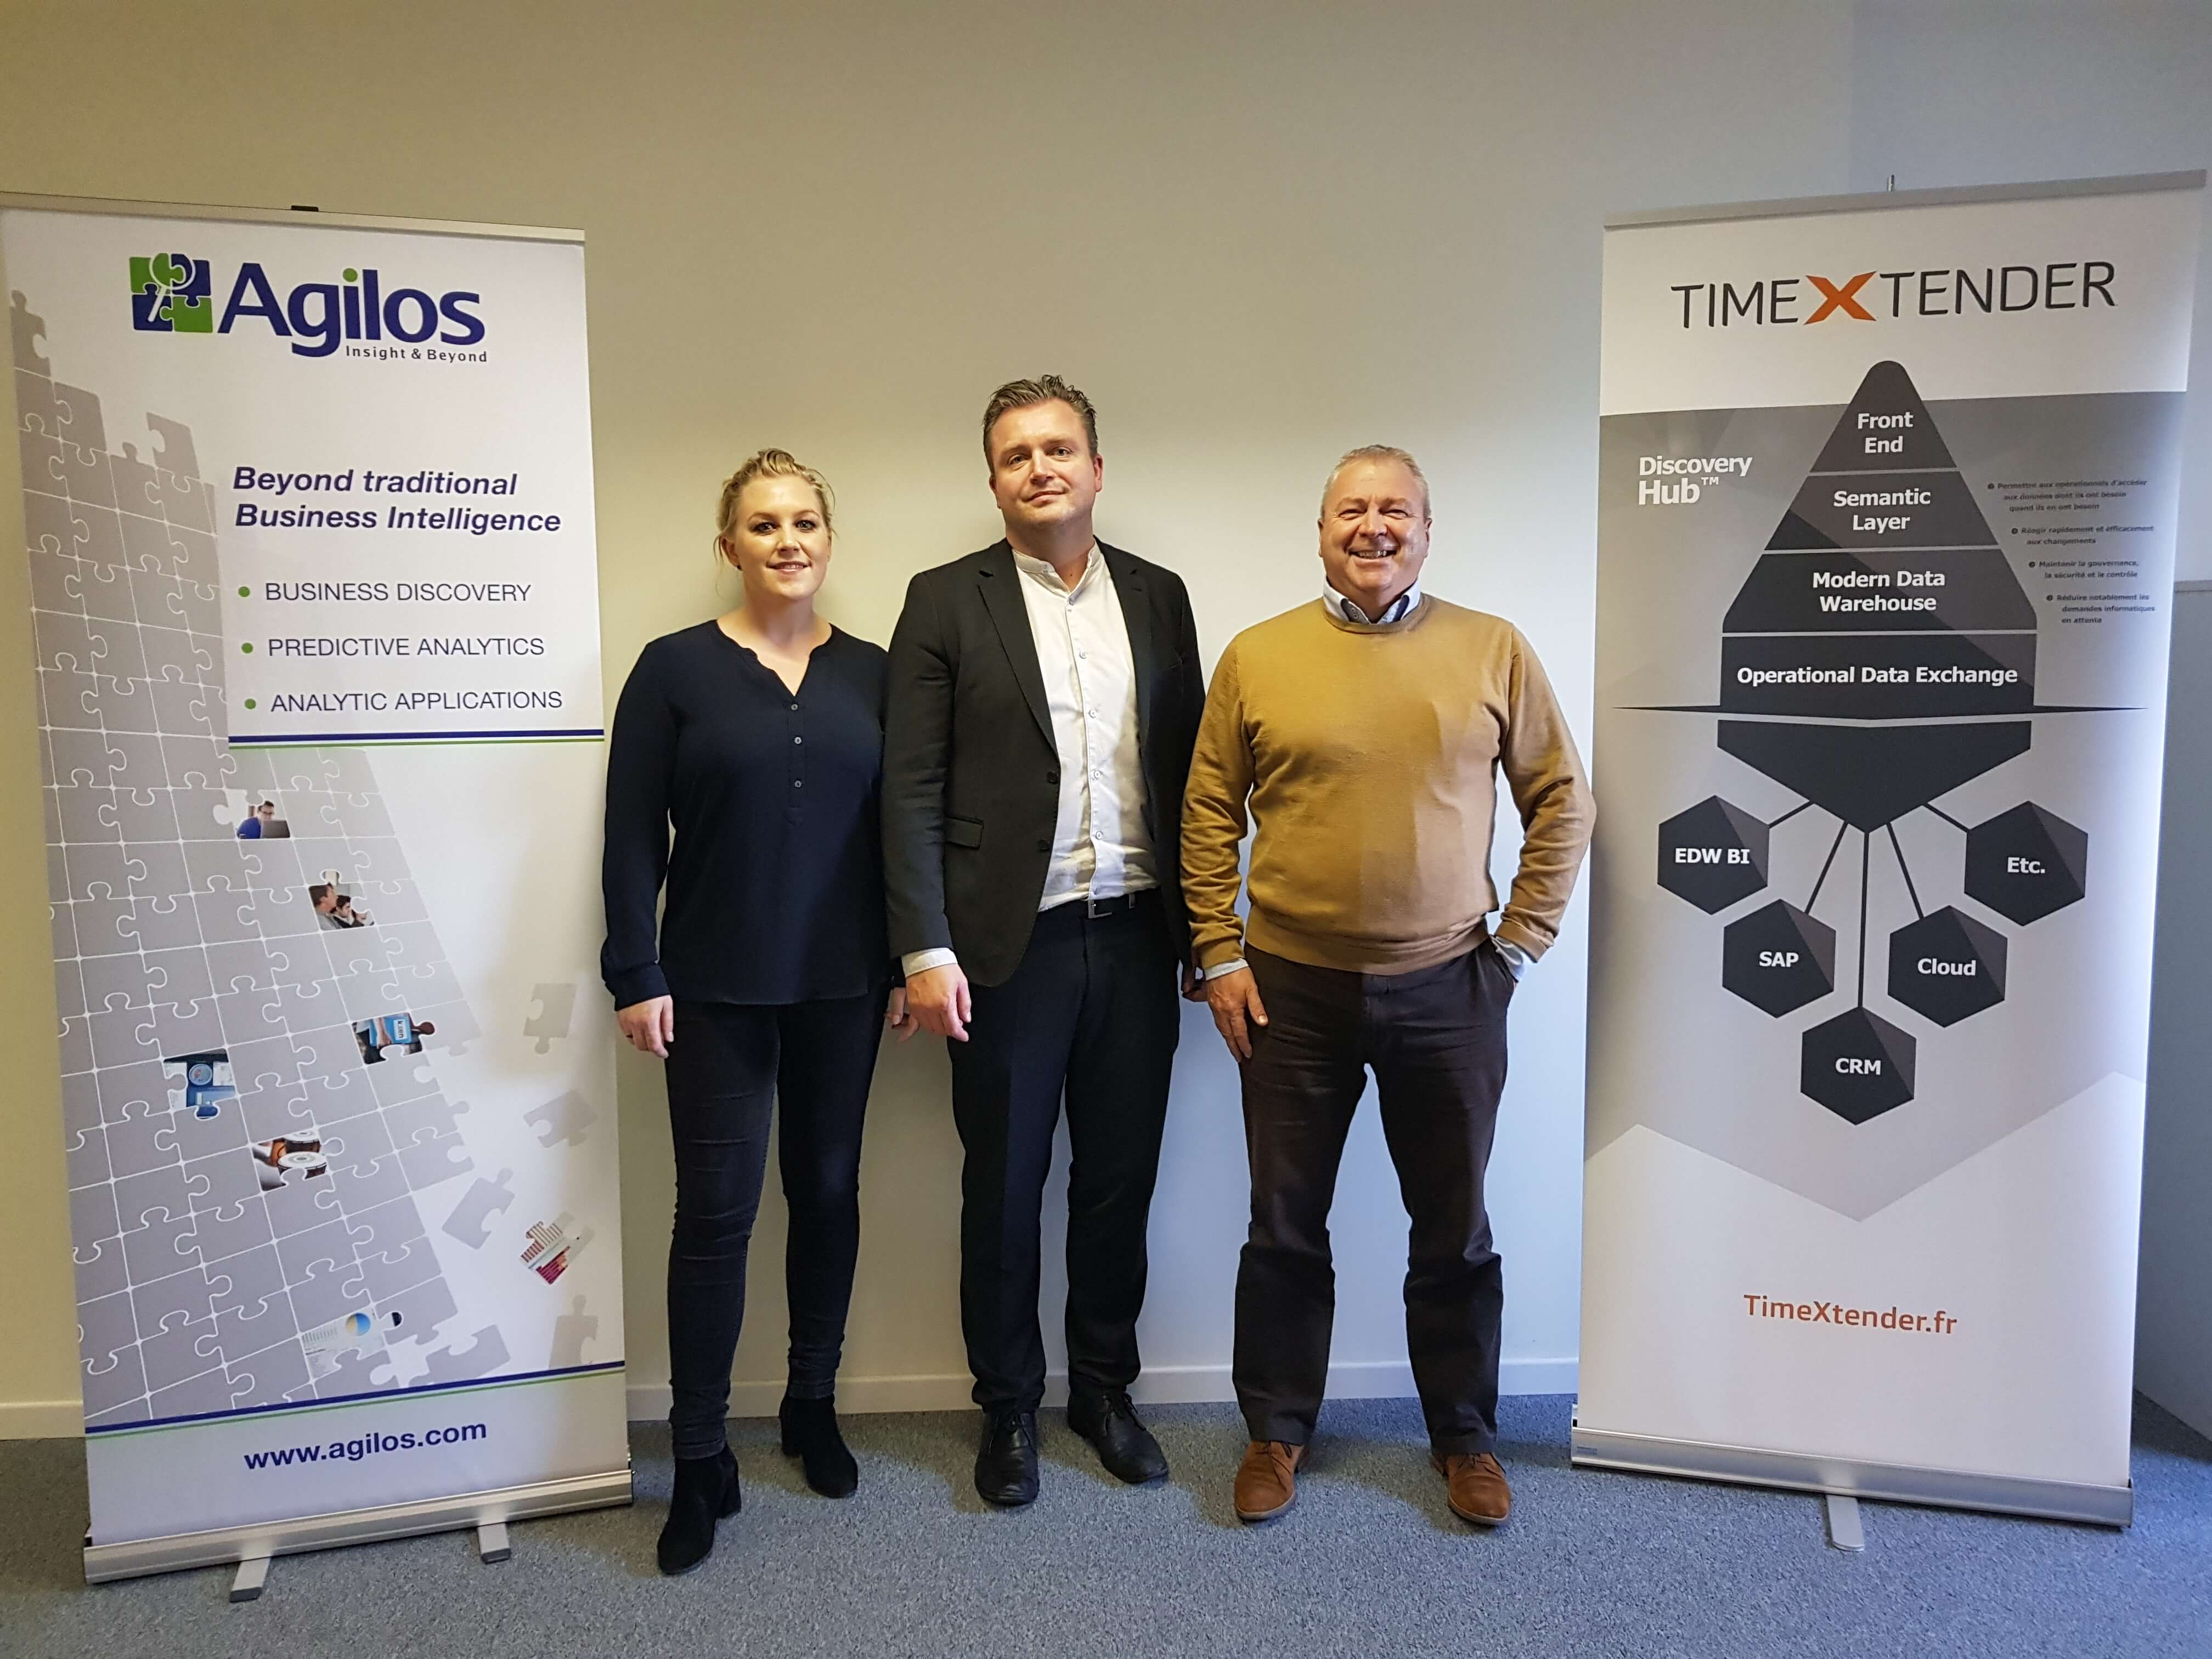 2017-10-27 Agilos signs partnership with TimeXtender.jpg